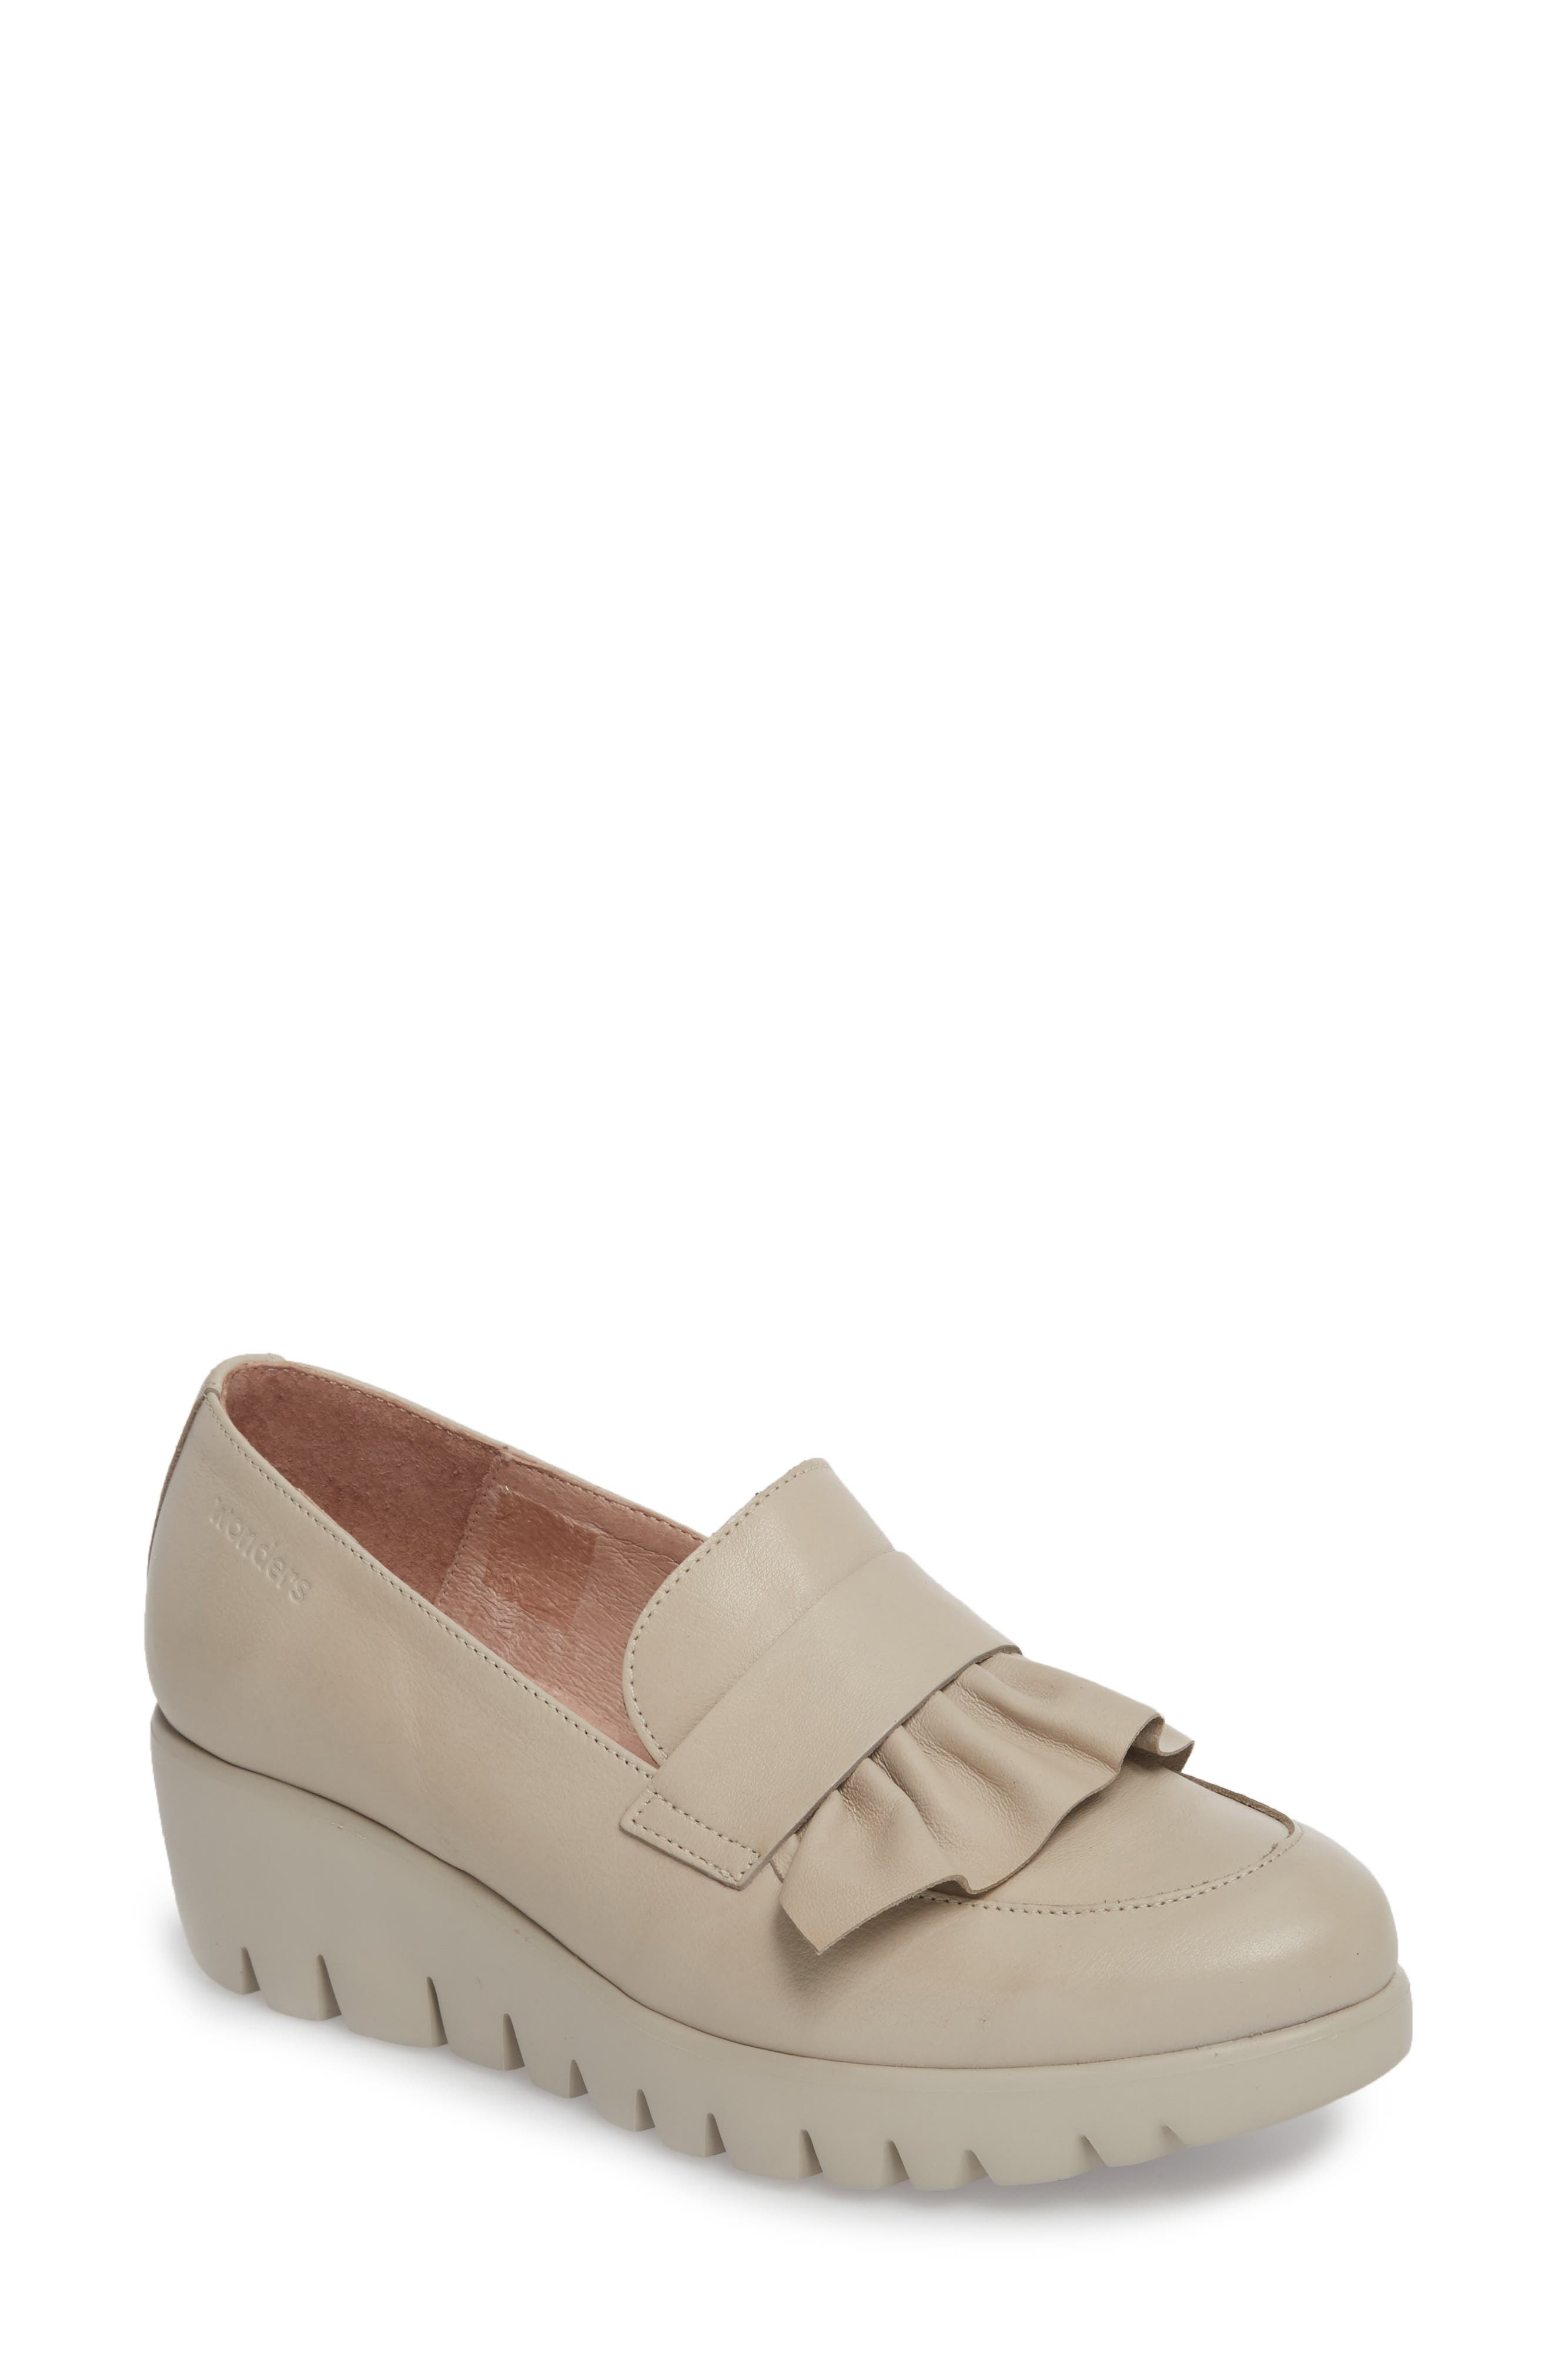 WONDERS Loafer Wedge in Light Grey Leather